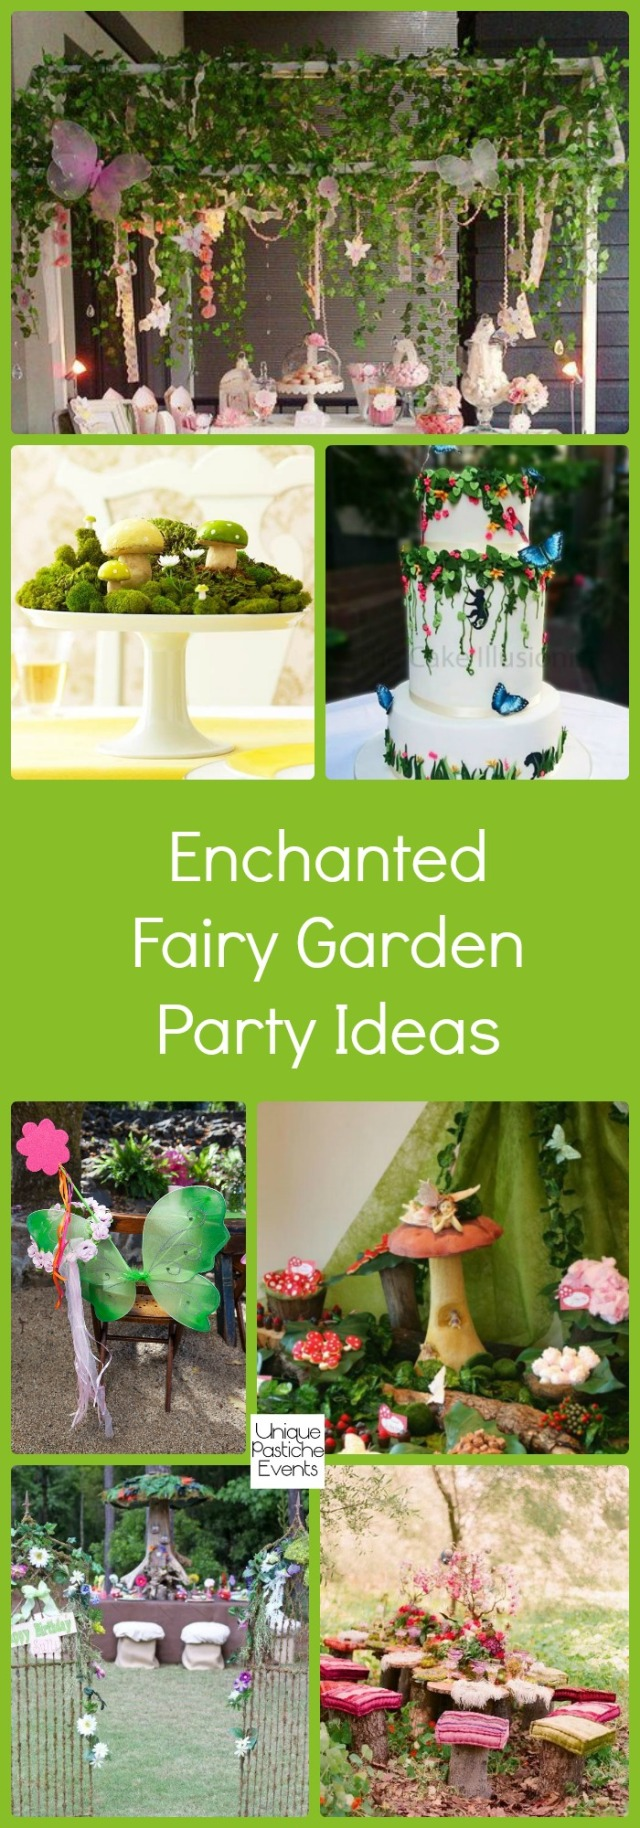 Enchanted Fairy Garden Party Ideas | Unique Pastiche Events